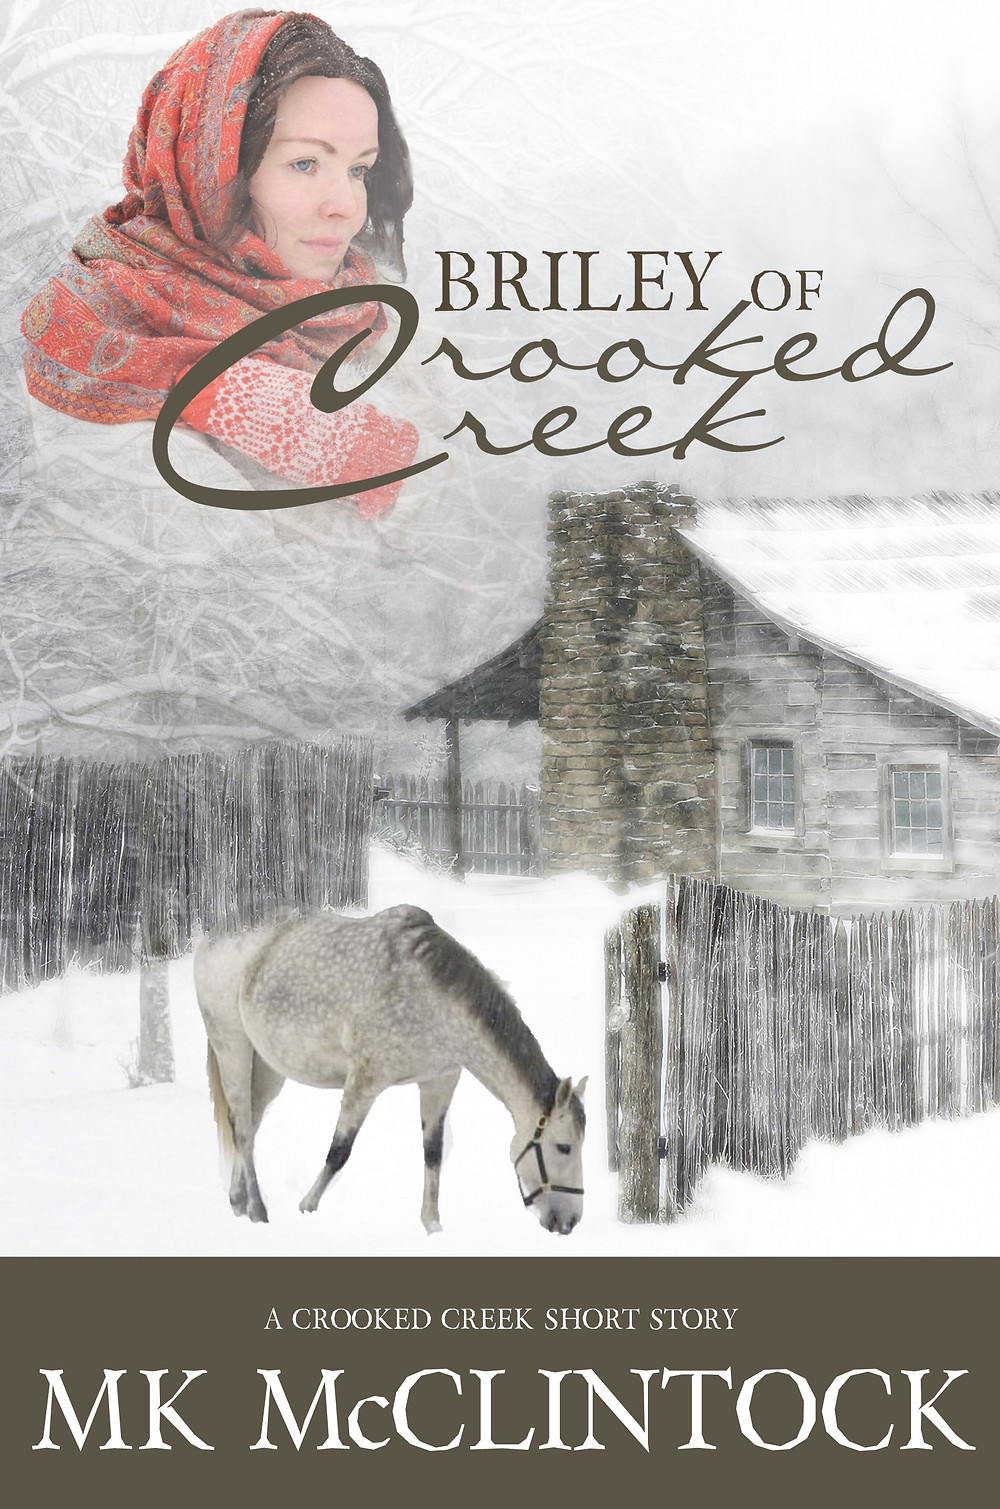 """""""Briley of Crooked Creek"""" by MK McClintock - historical western adventure story"""